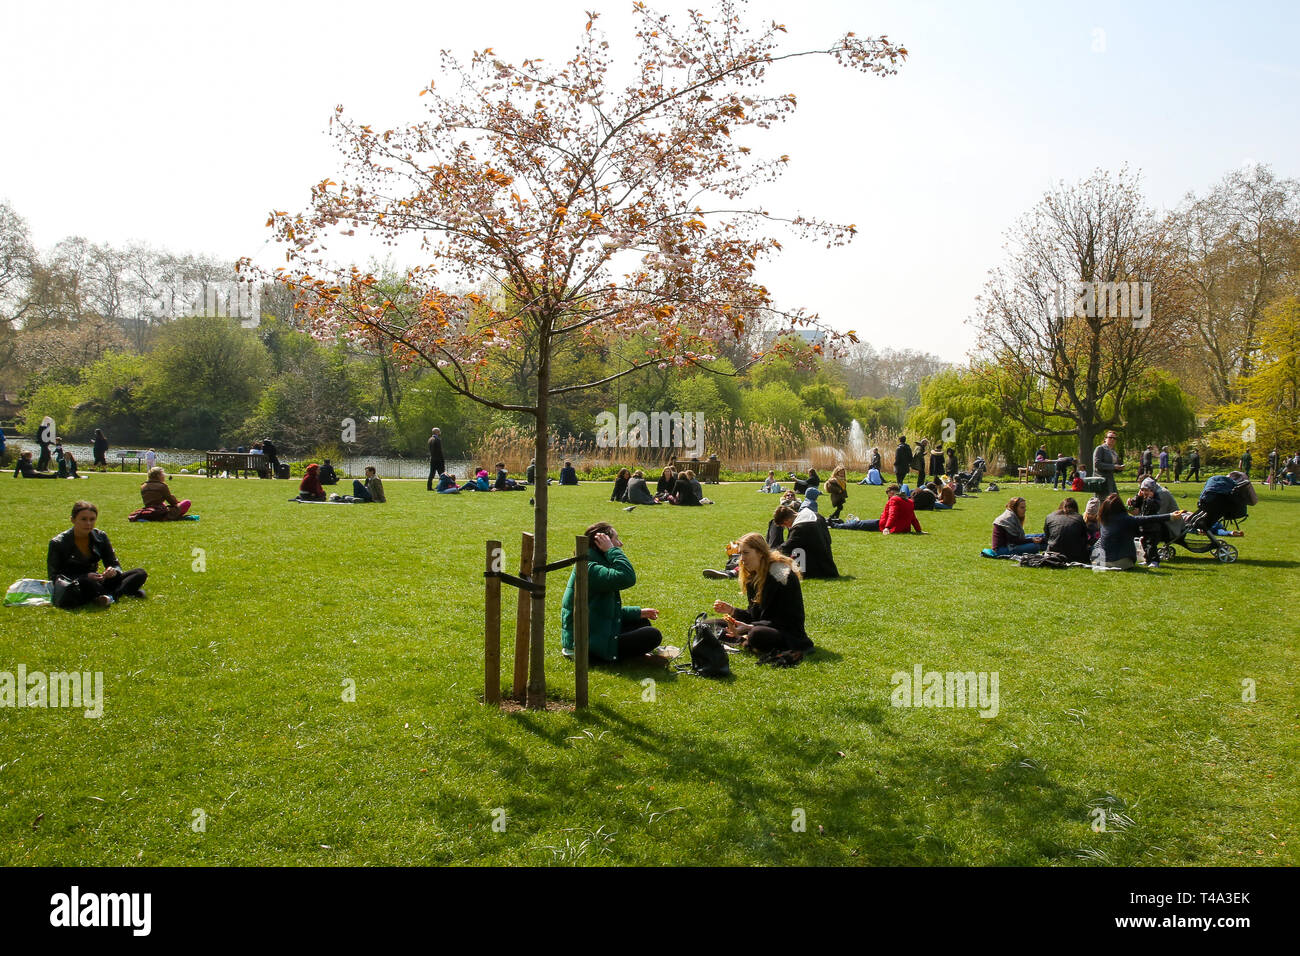 St James's Park, London, UK 15 April 2019 - People and sunbather makes the most of the warm weather in St James's Park. The weather forecast is set to be warmer for the rest of the week and the Easter weekend.  Credit: Dinendra Haria/Alamy Live News - Stock Image